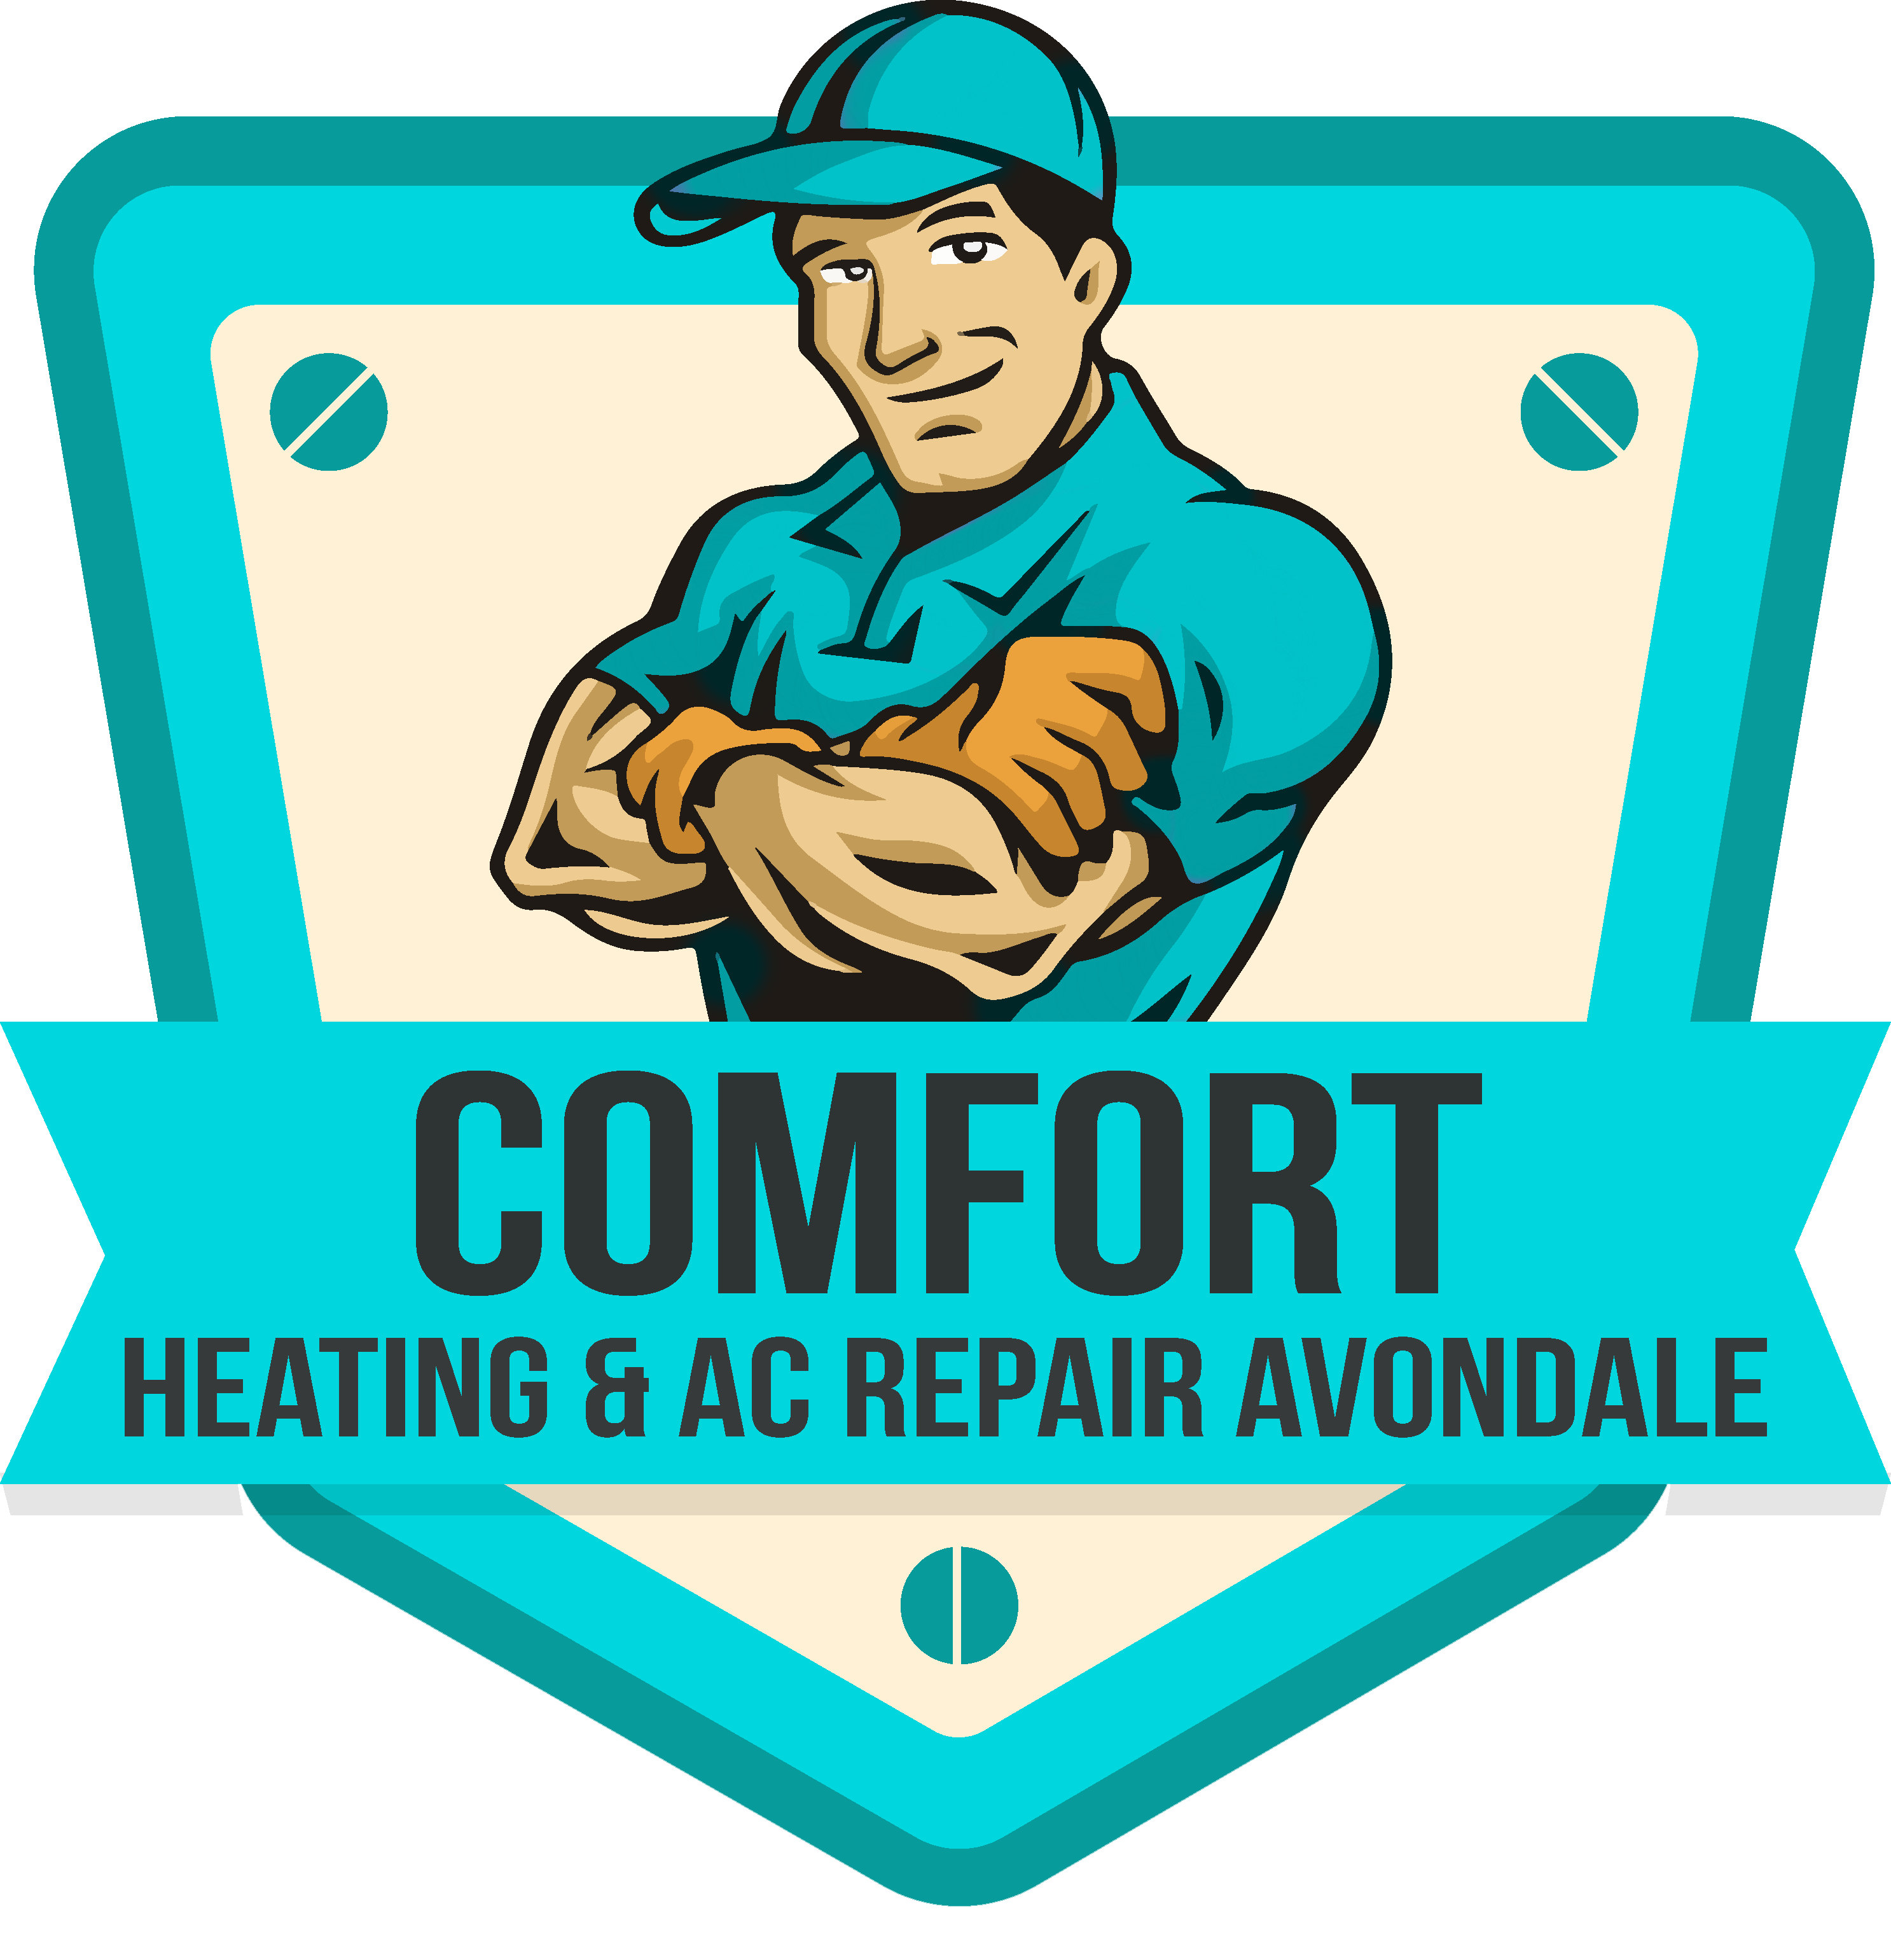 Avondale Heating And Ac Repair Offers Commercial And Residential Ac Repair Installation Repair And Maintenance Including Air Conditioner And Heating Service A Goruntuler Ile